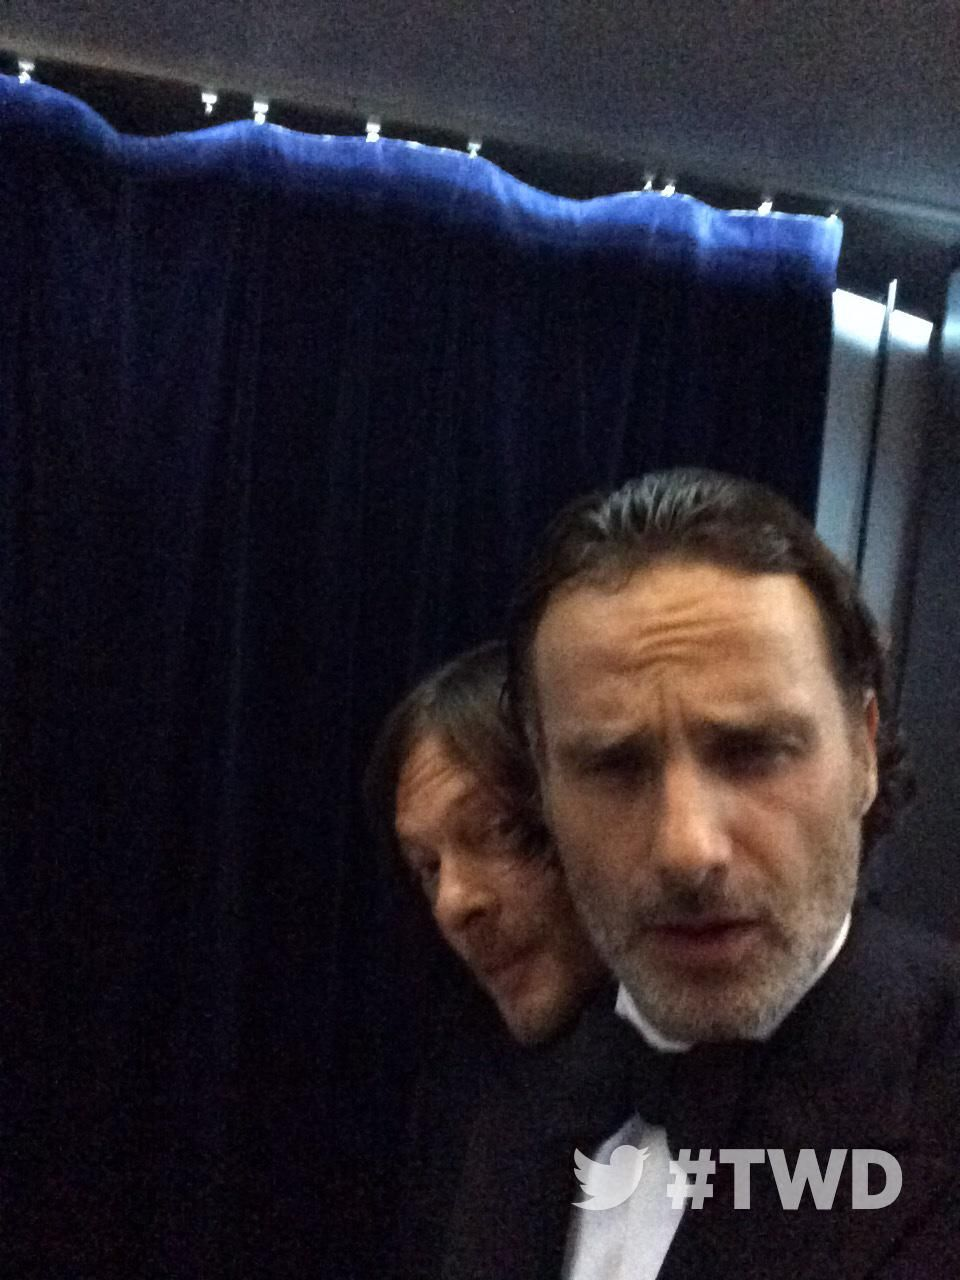 """The Walking Dead AMC on Twitter: """"Excited to be at the #TWDFanPremiere tonight! Wwwbigbaldhead http://t.co/eufPc8yNEk"""""""